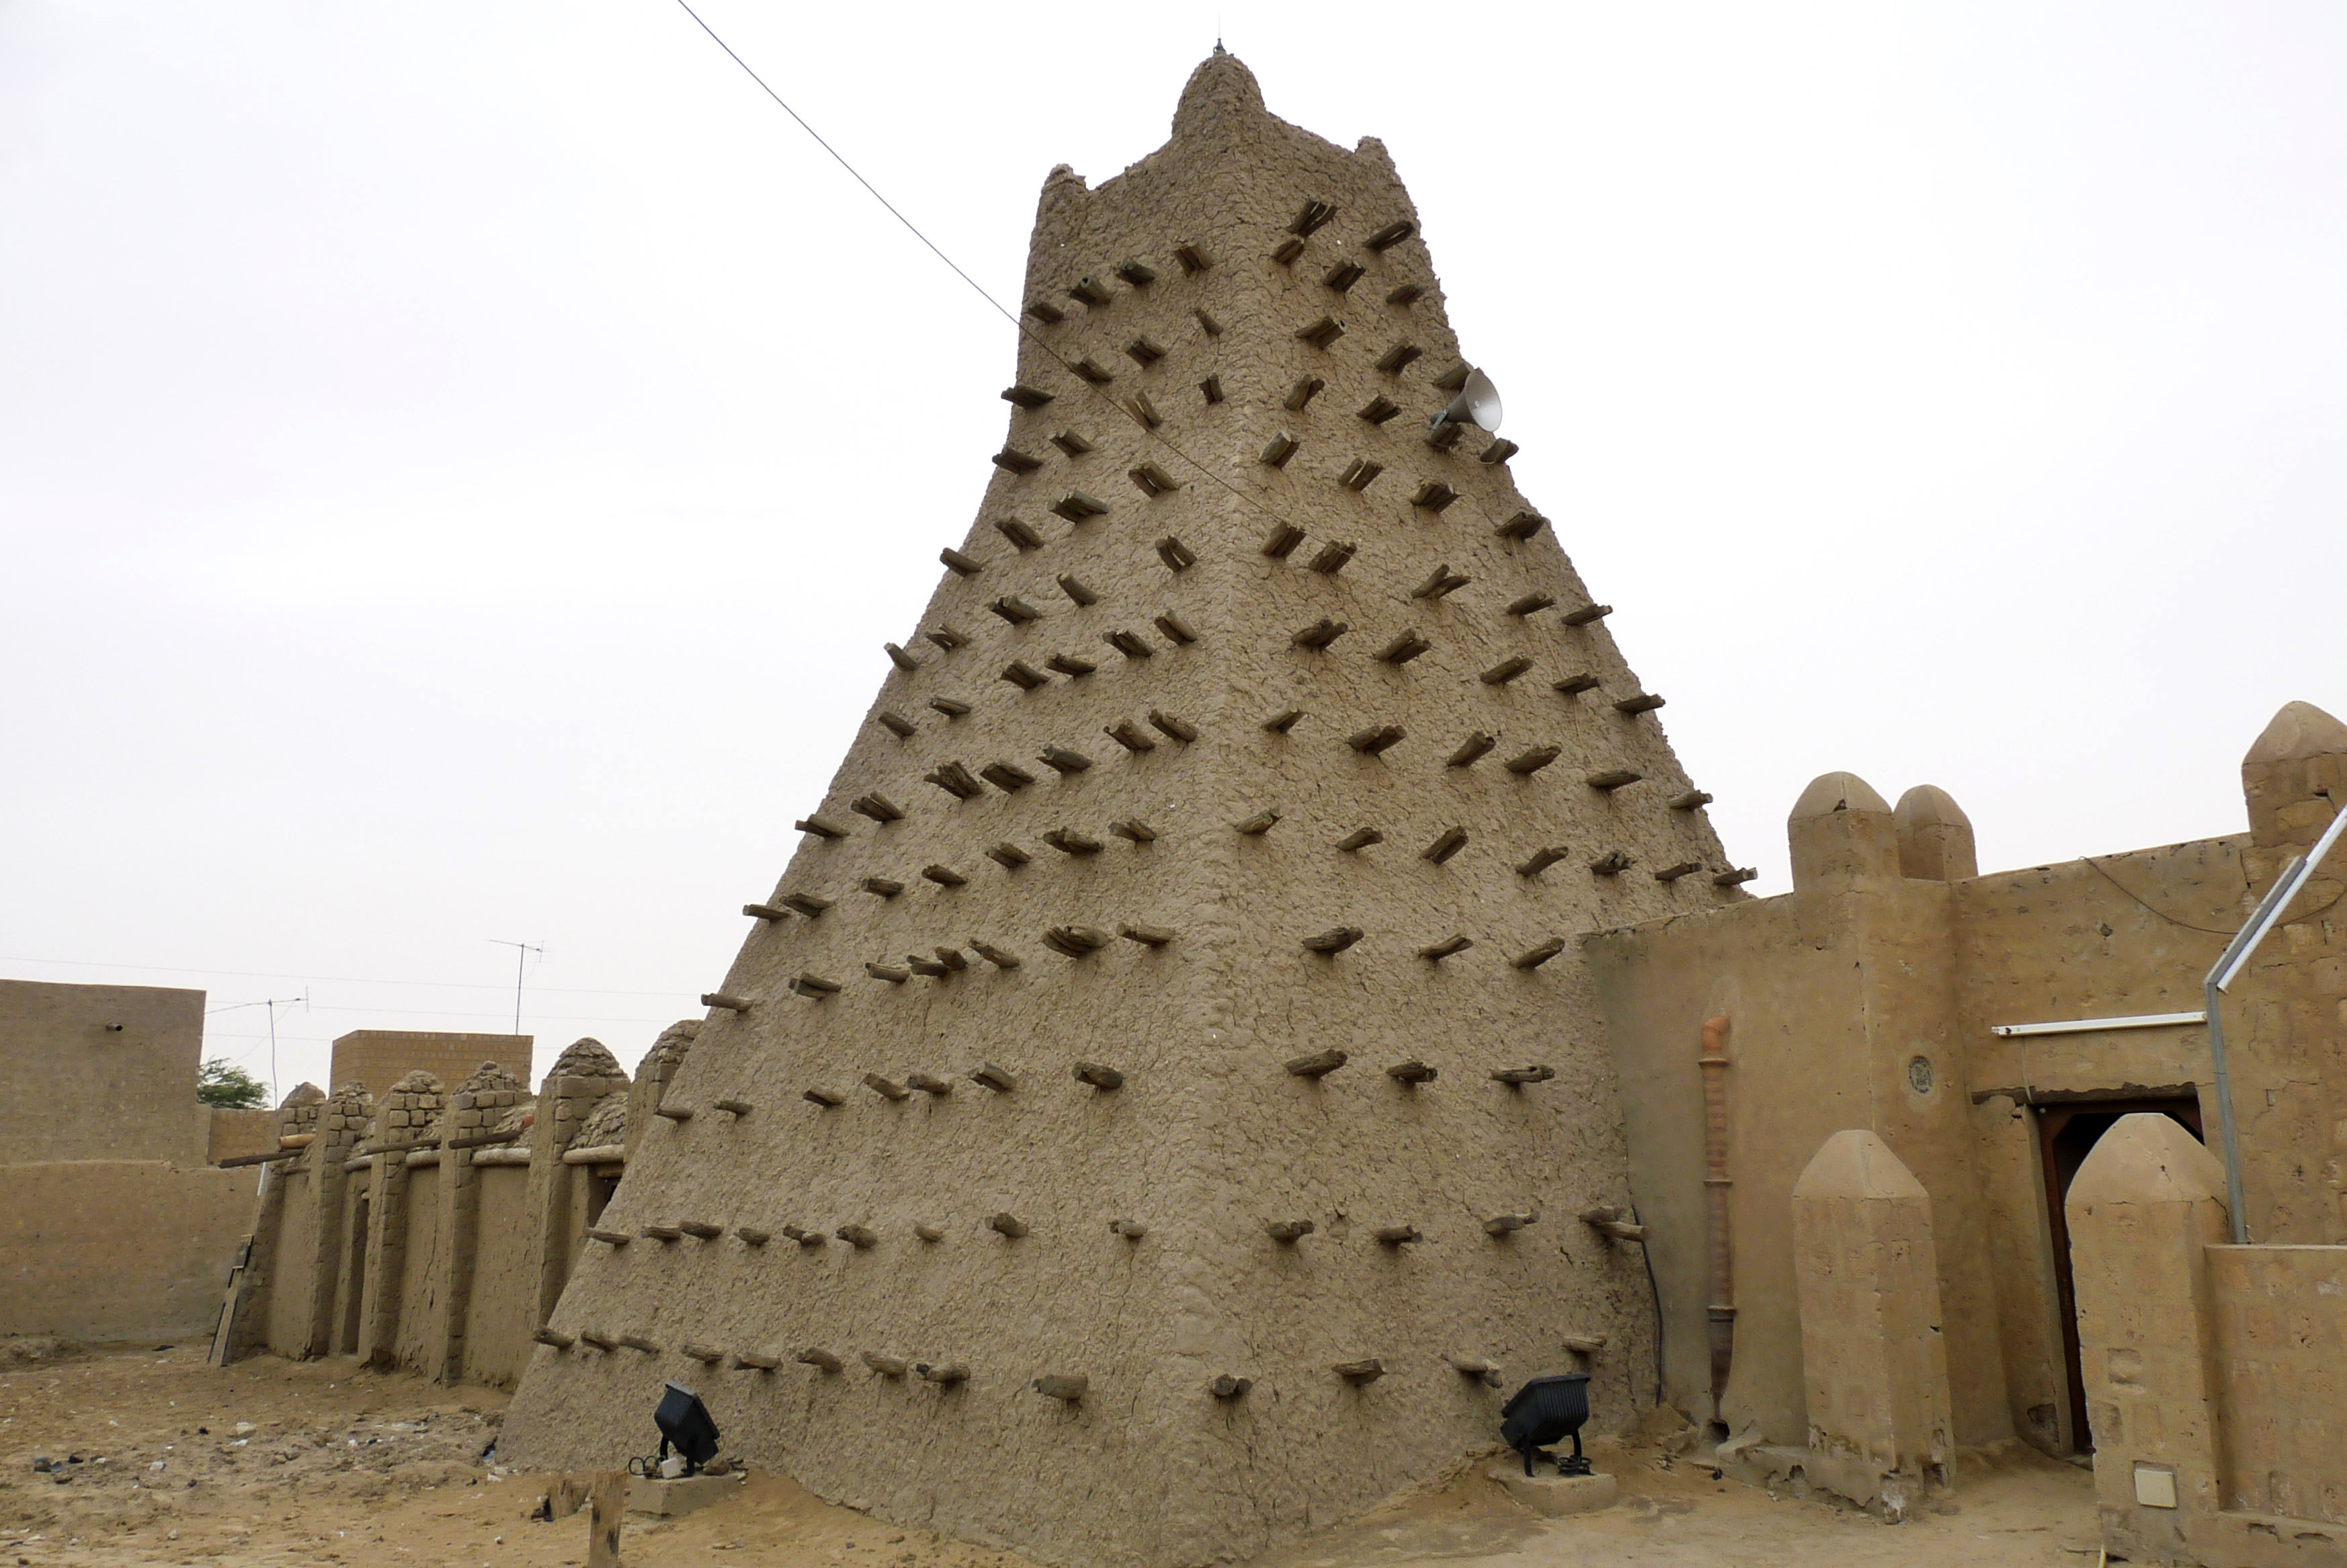 A traditional mud structure stands in the Malian city of Timbuktu, May 15, 2012. Al-Qaida-linked Mali Islamists armed with Kalashnikovs and pick-axes began destroying prized mausoleums of saints in Timbuktu on June 30, 2012, in front of shocked local...